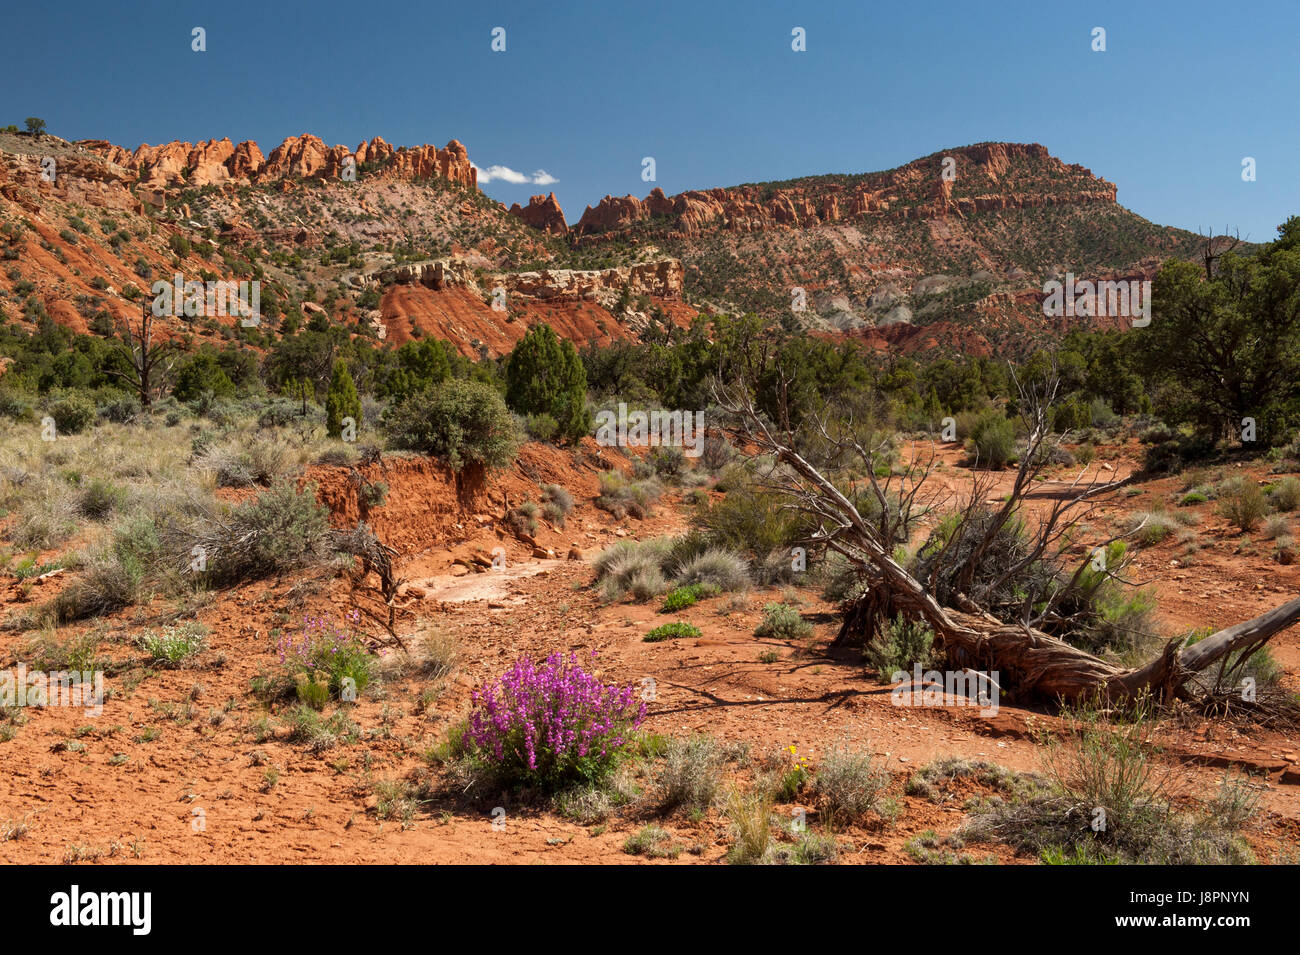 Along the South Draw 4-wheel-drive trail in Capitol Reef National Park, Utah - Stock Image